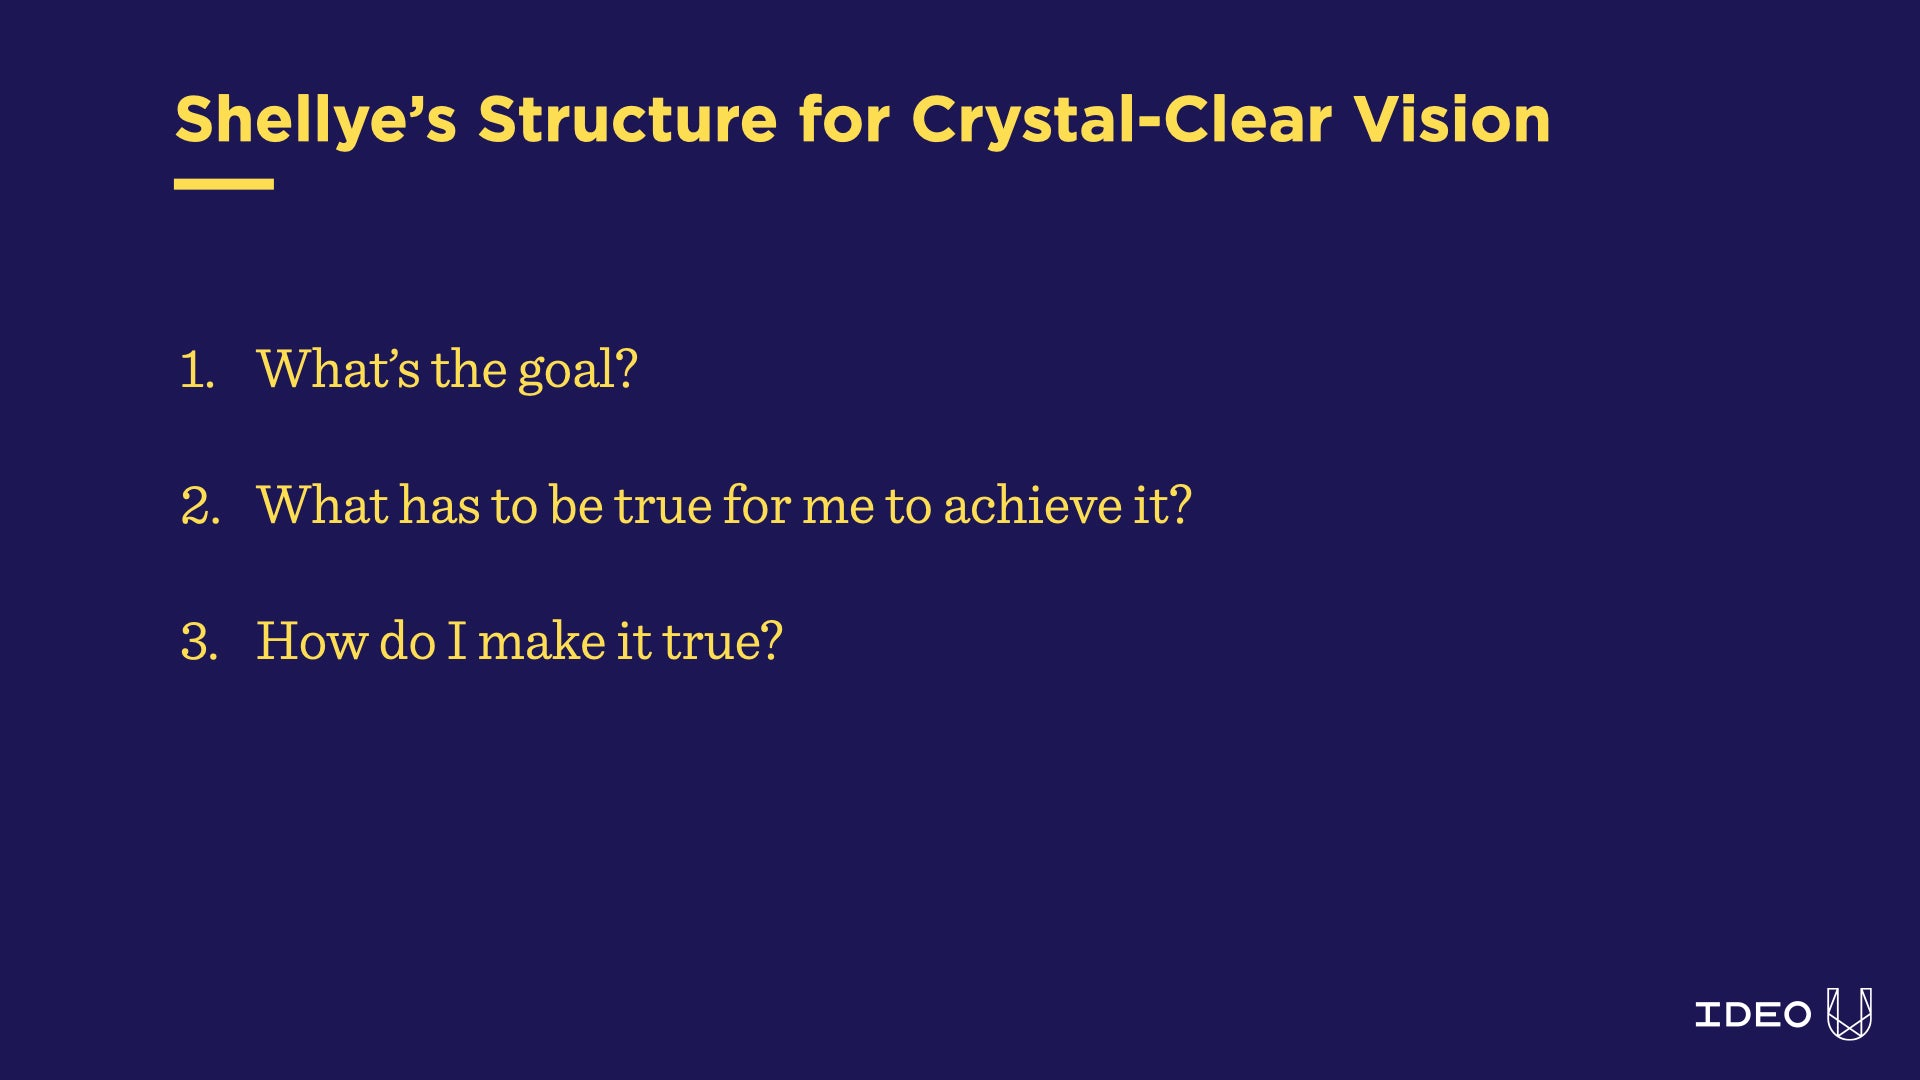 Shellye's structure for vision